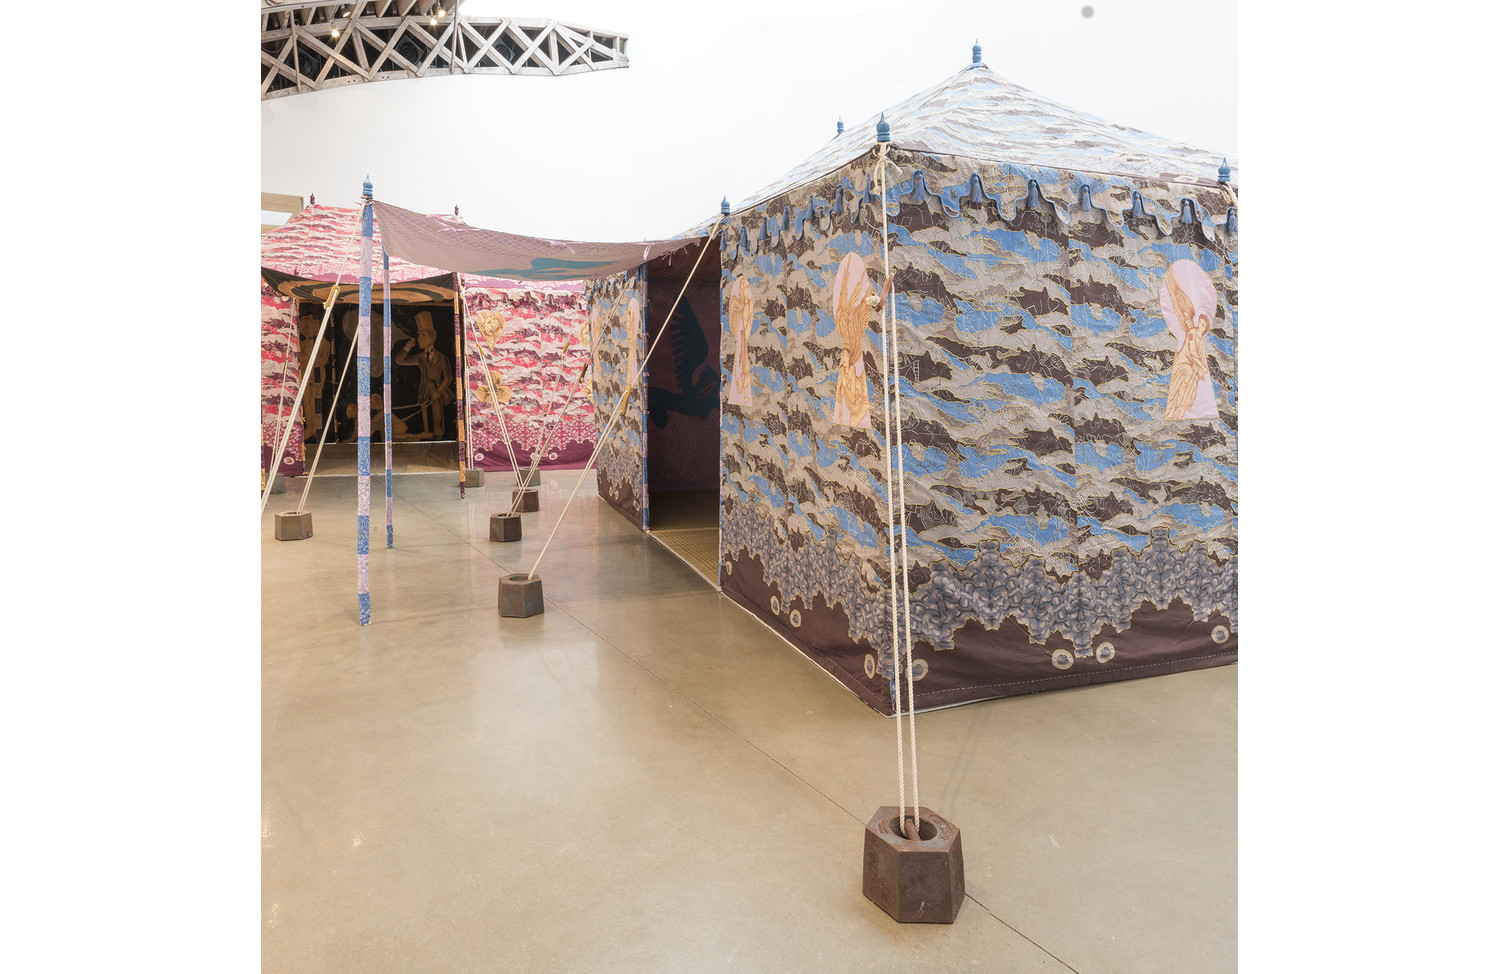 Francesco Clemente Devil's Tent - View 1